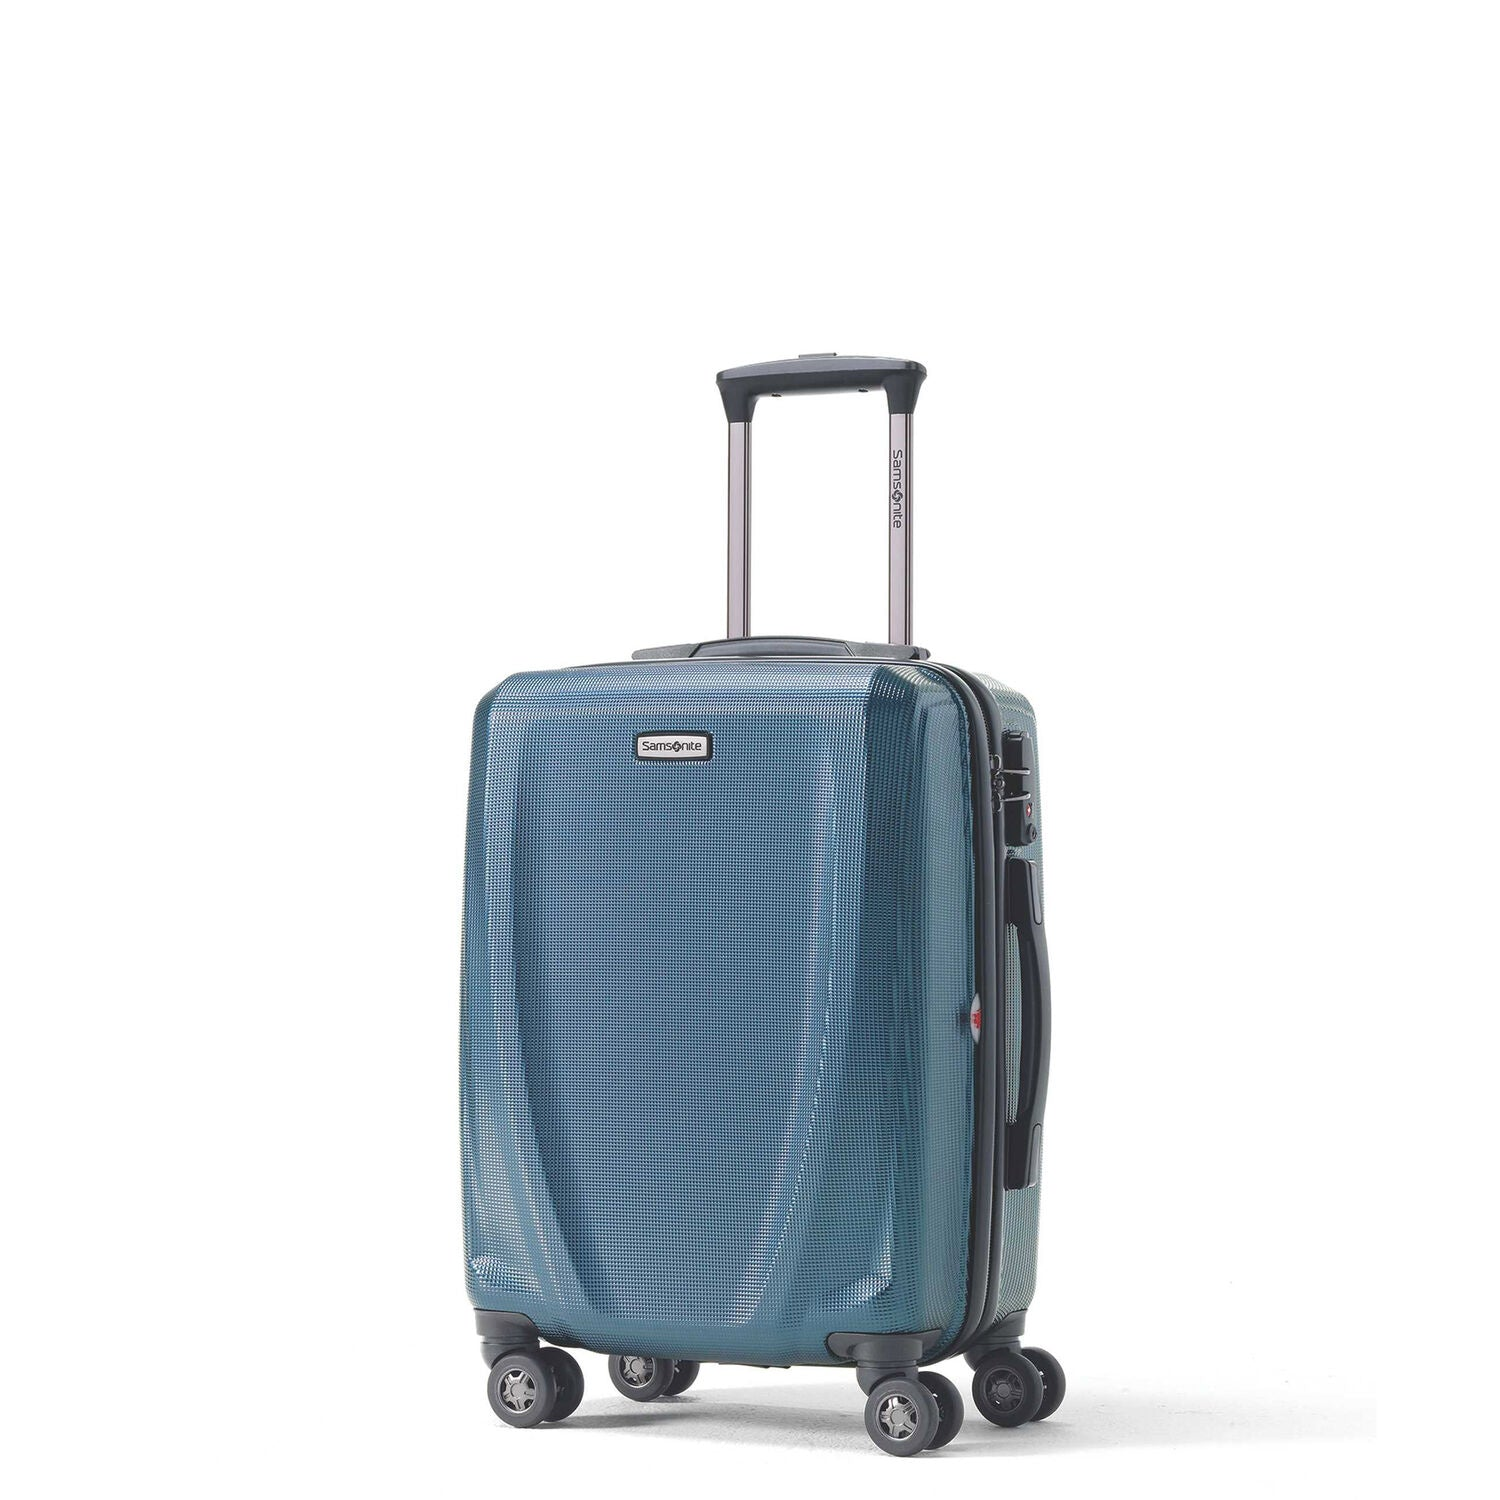 Samsonite Pursuit DLX Widebody Spinner Carry-On